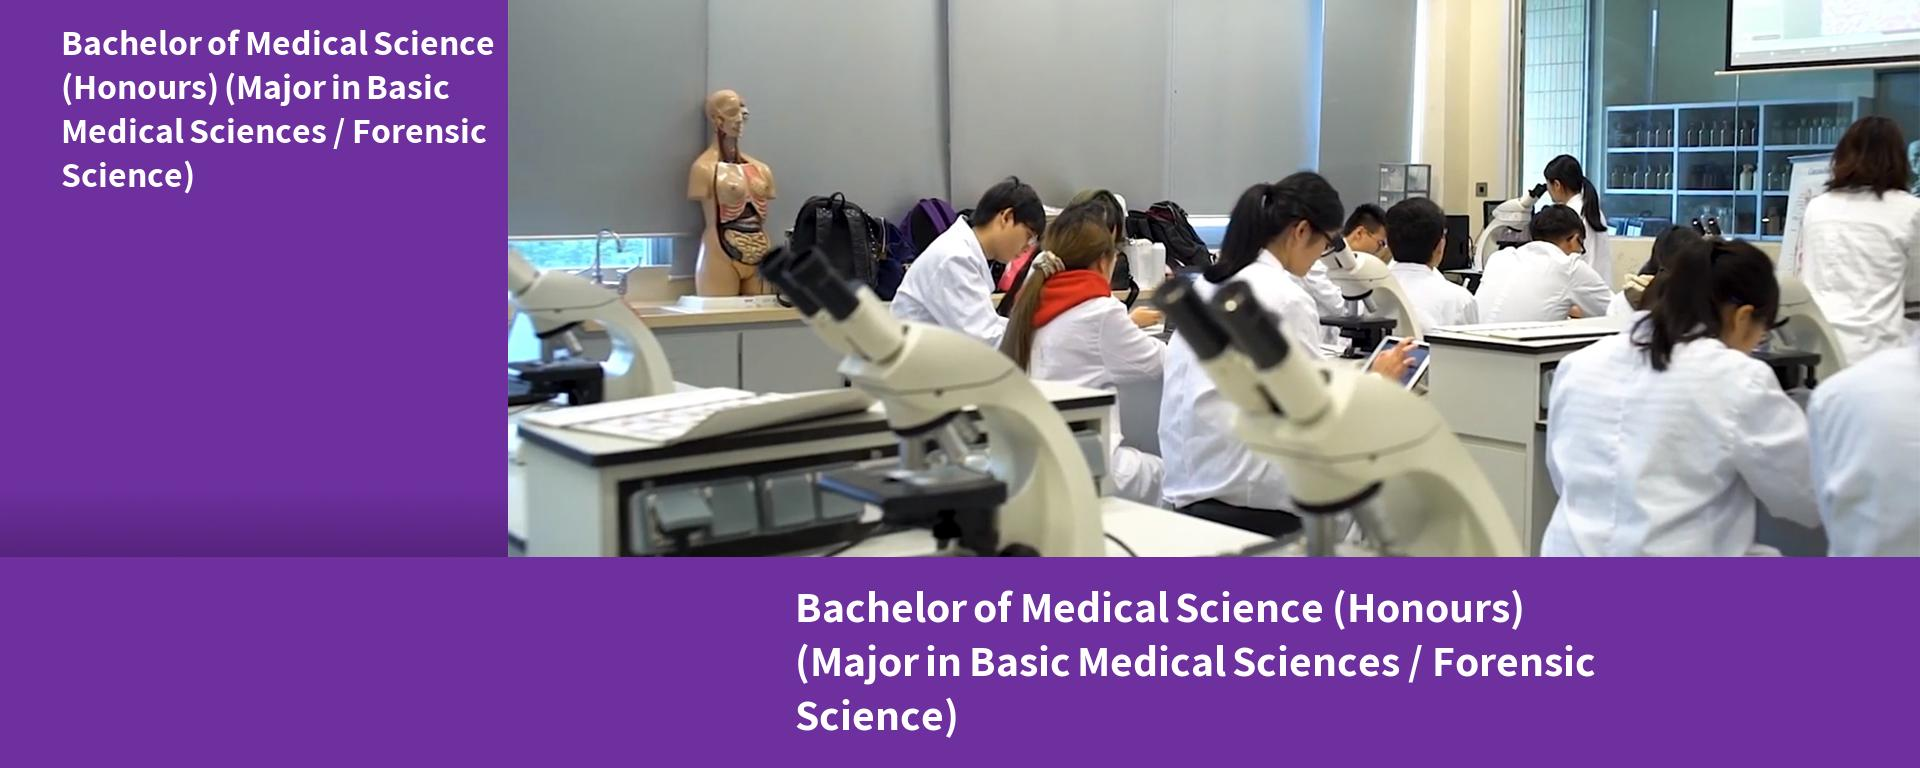 Bachelor of Medical Science (Honours) (Major in Basic Medical Sciences / Forensic Science)